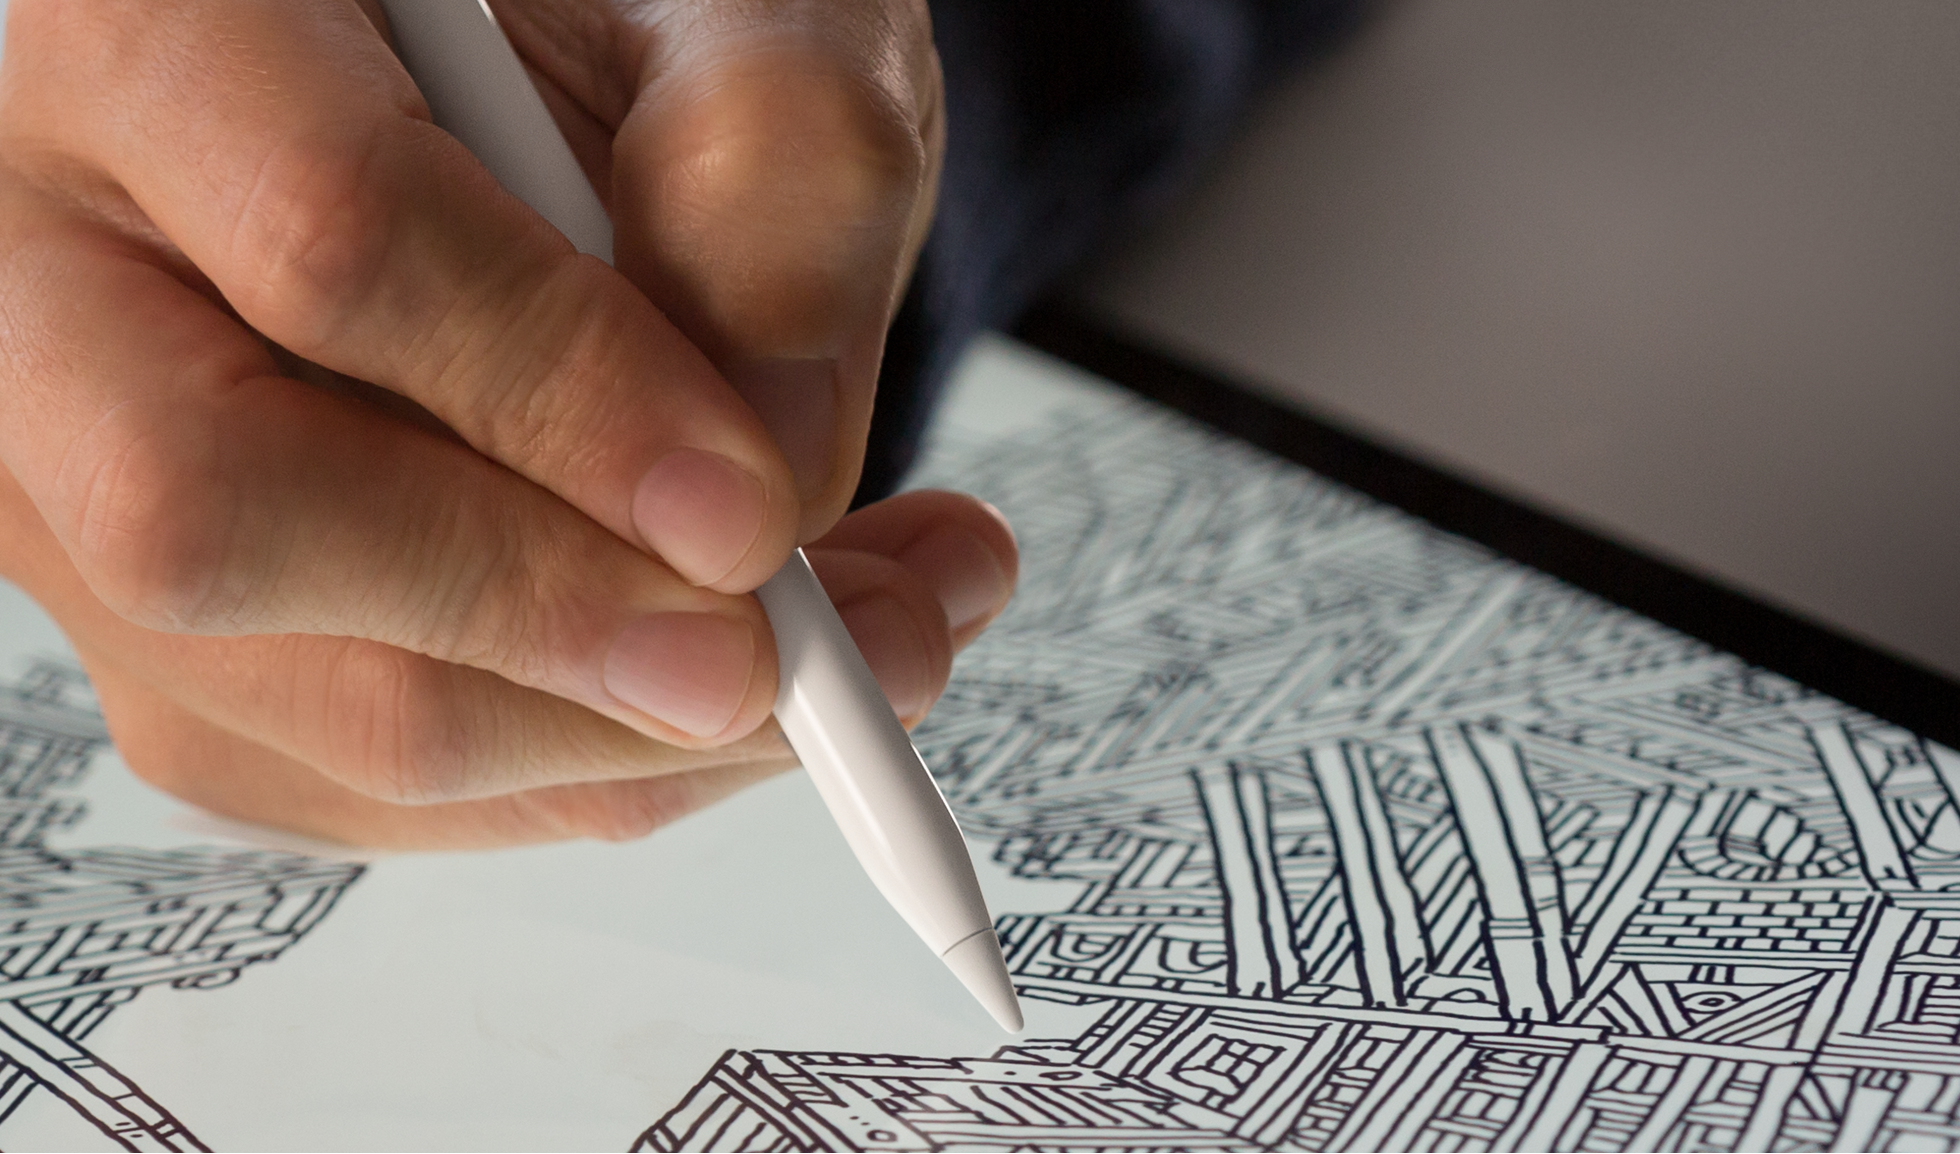 Apple pencil lets you easily vary line weight create subtle shading and produce a wide range of artistic effects get fast free shipping when you buy